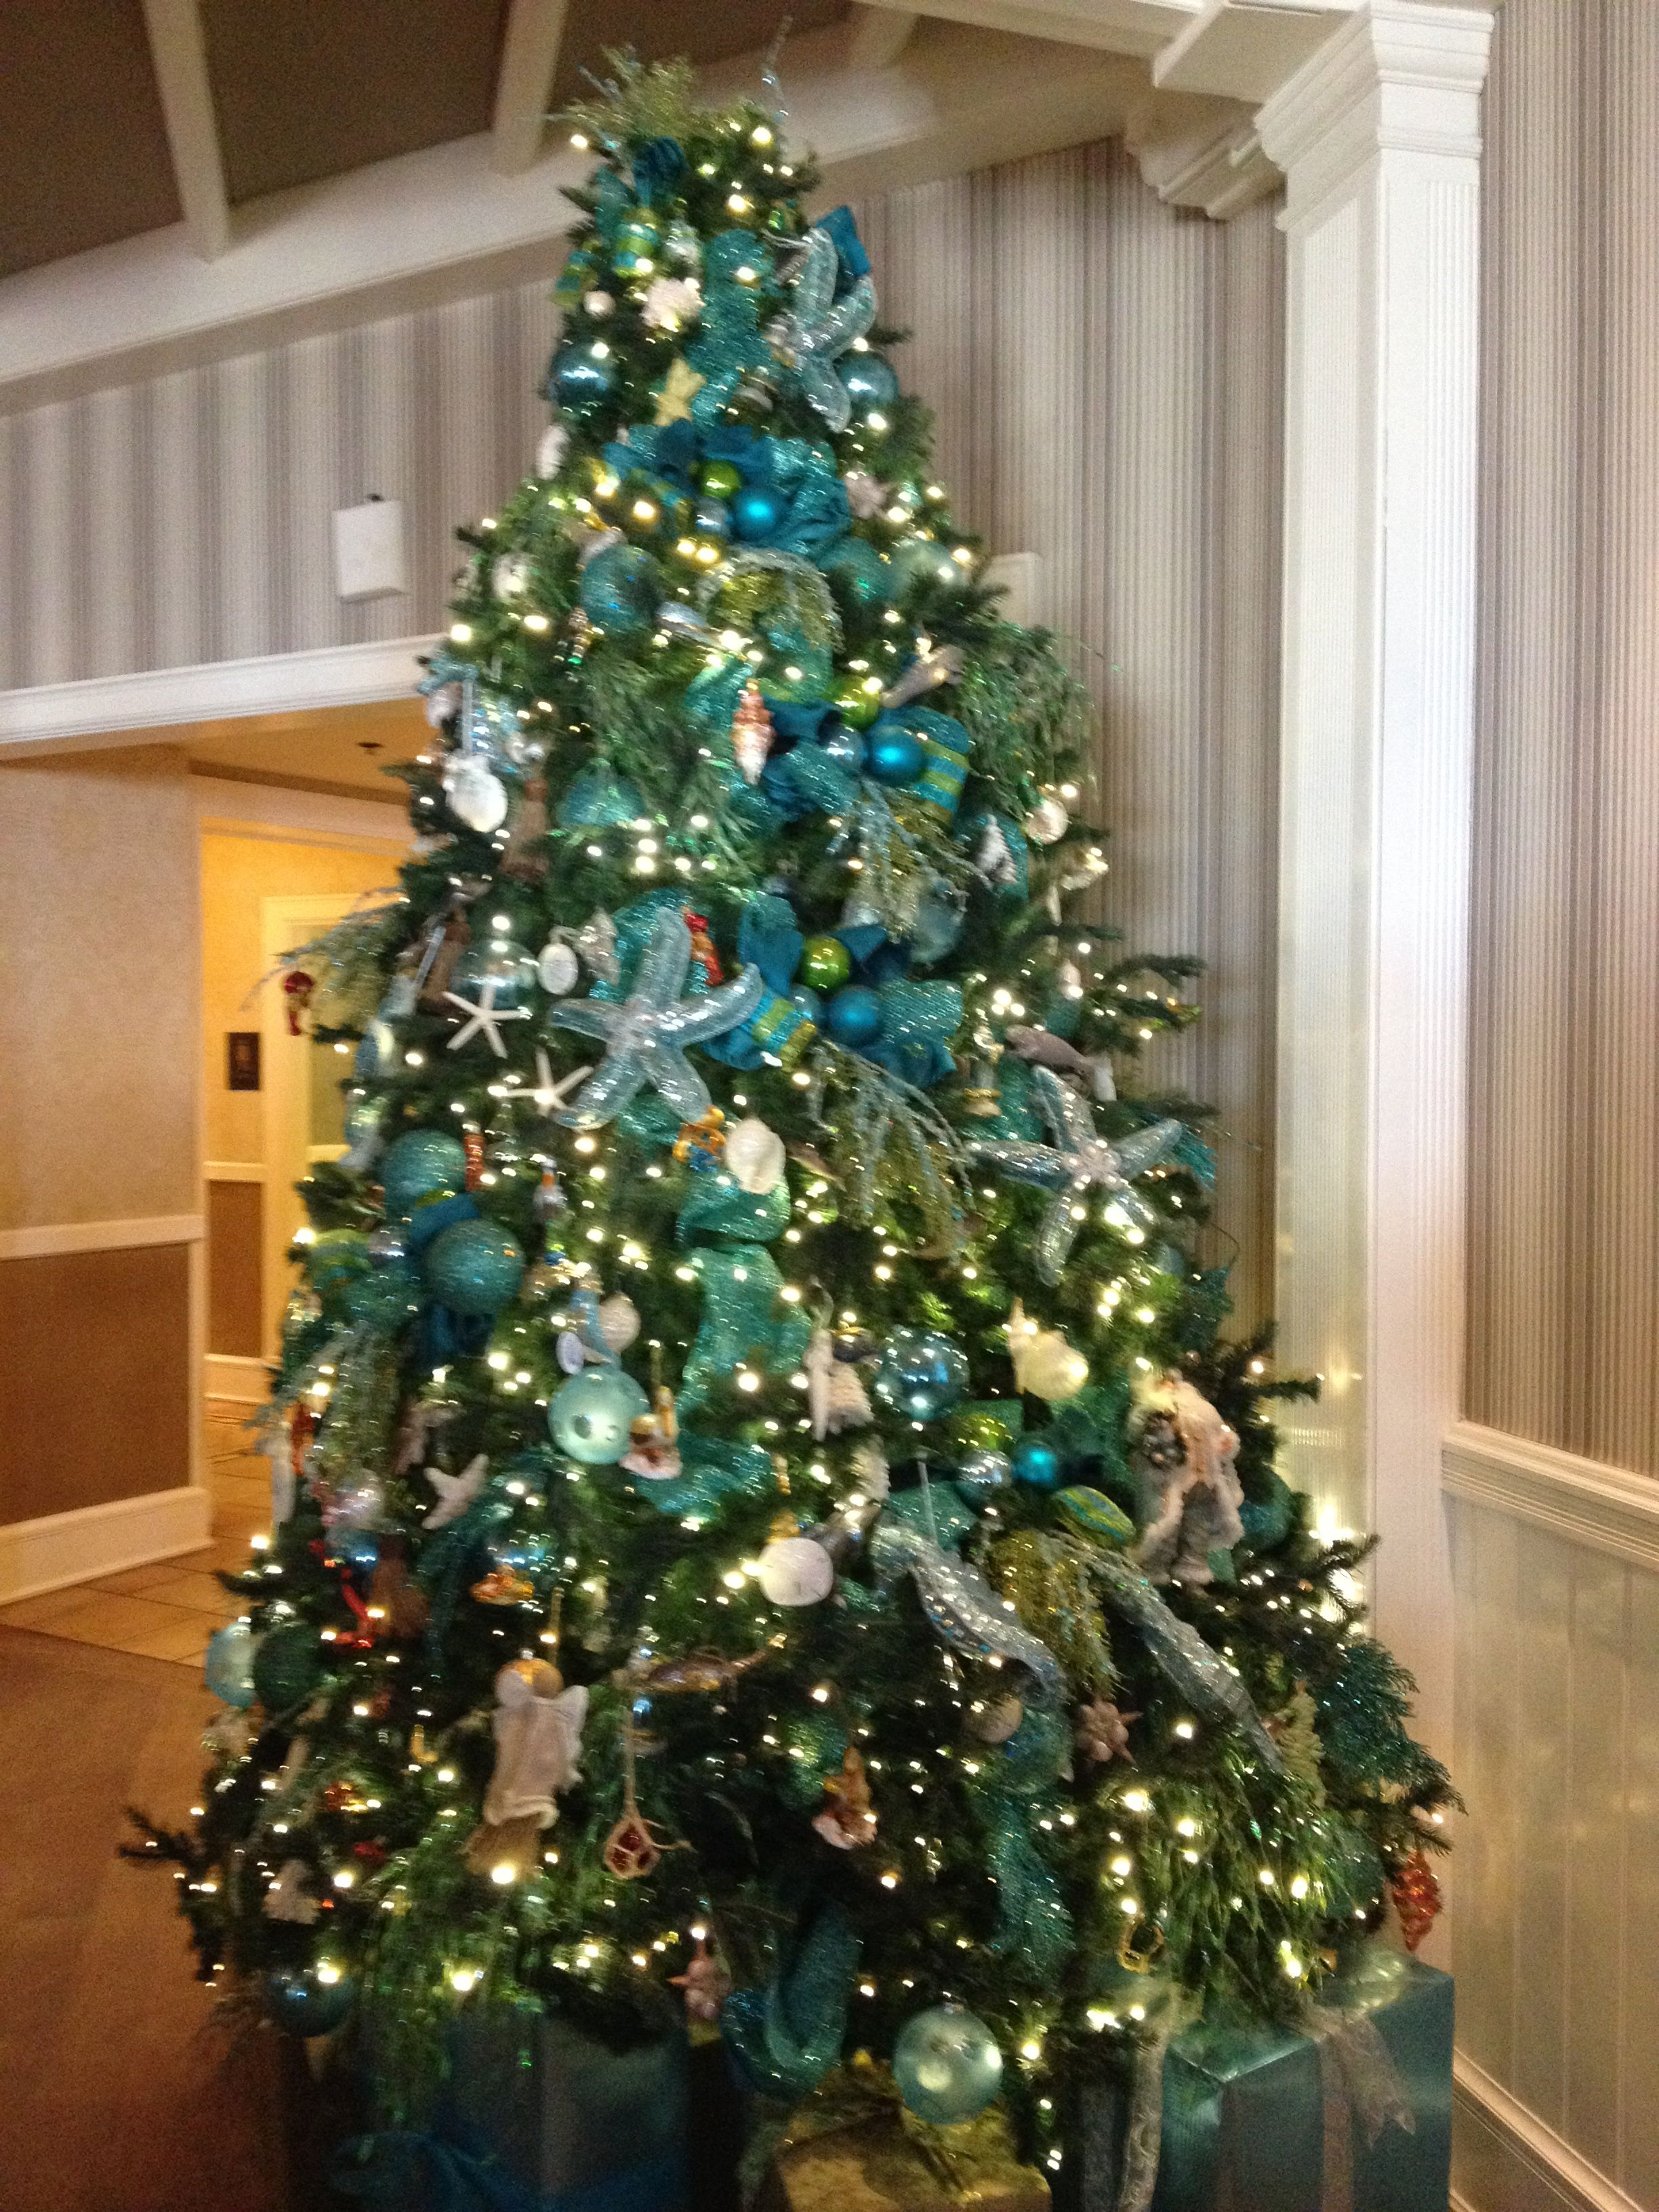 Seashore Christmas tree from the Hotel del